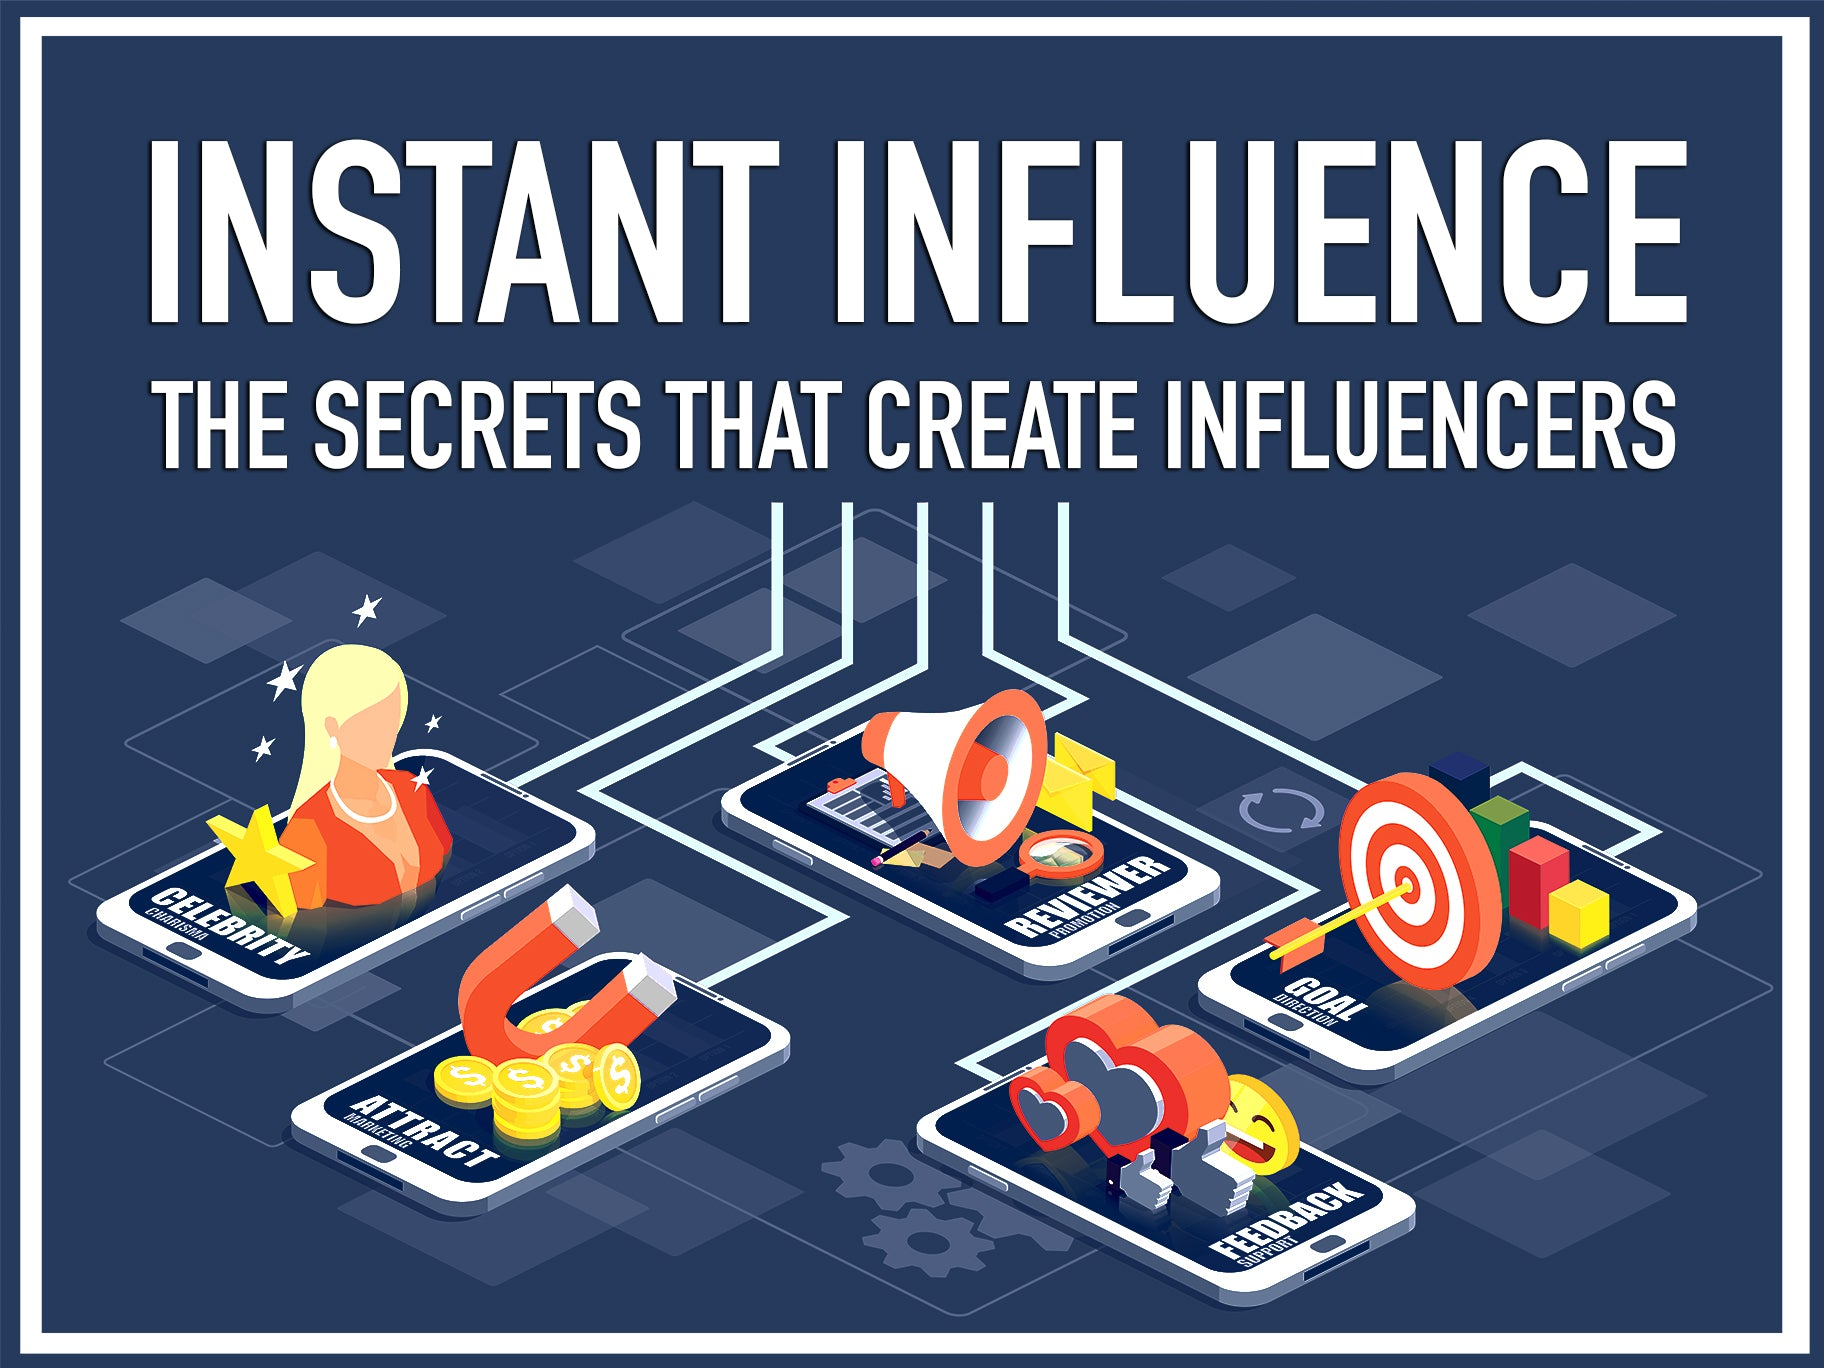 Instant Influence: The Secrets that Create Influencers